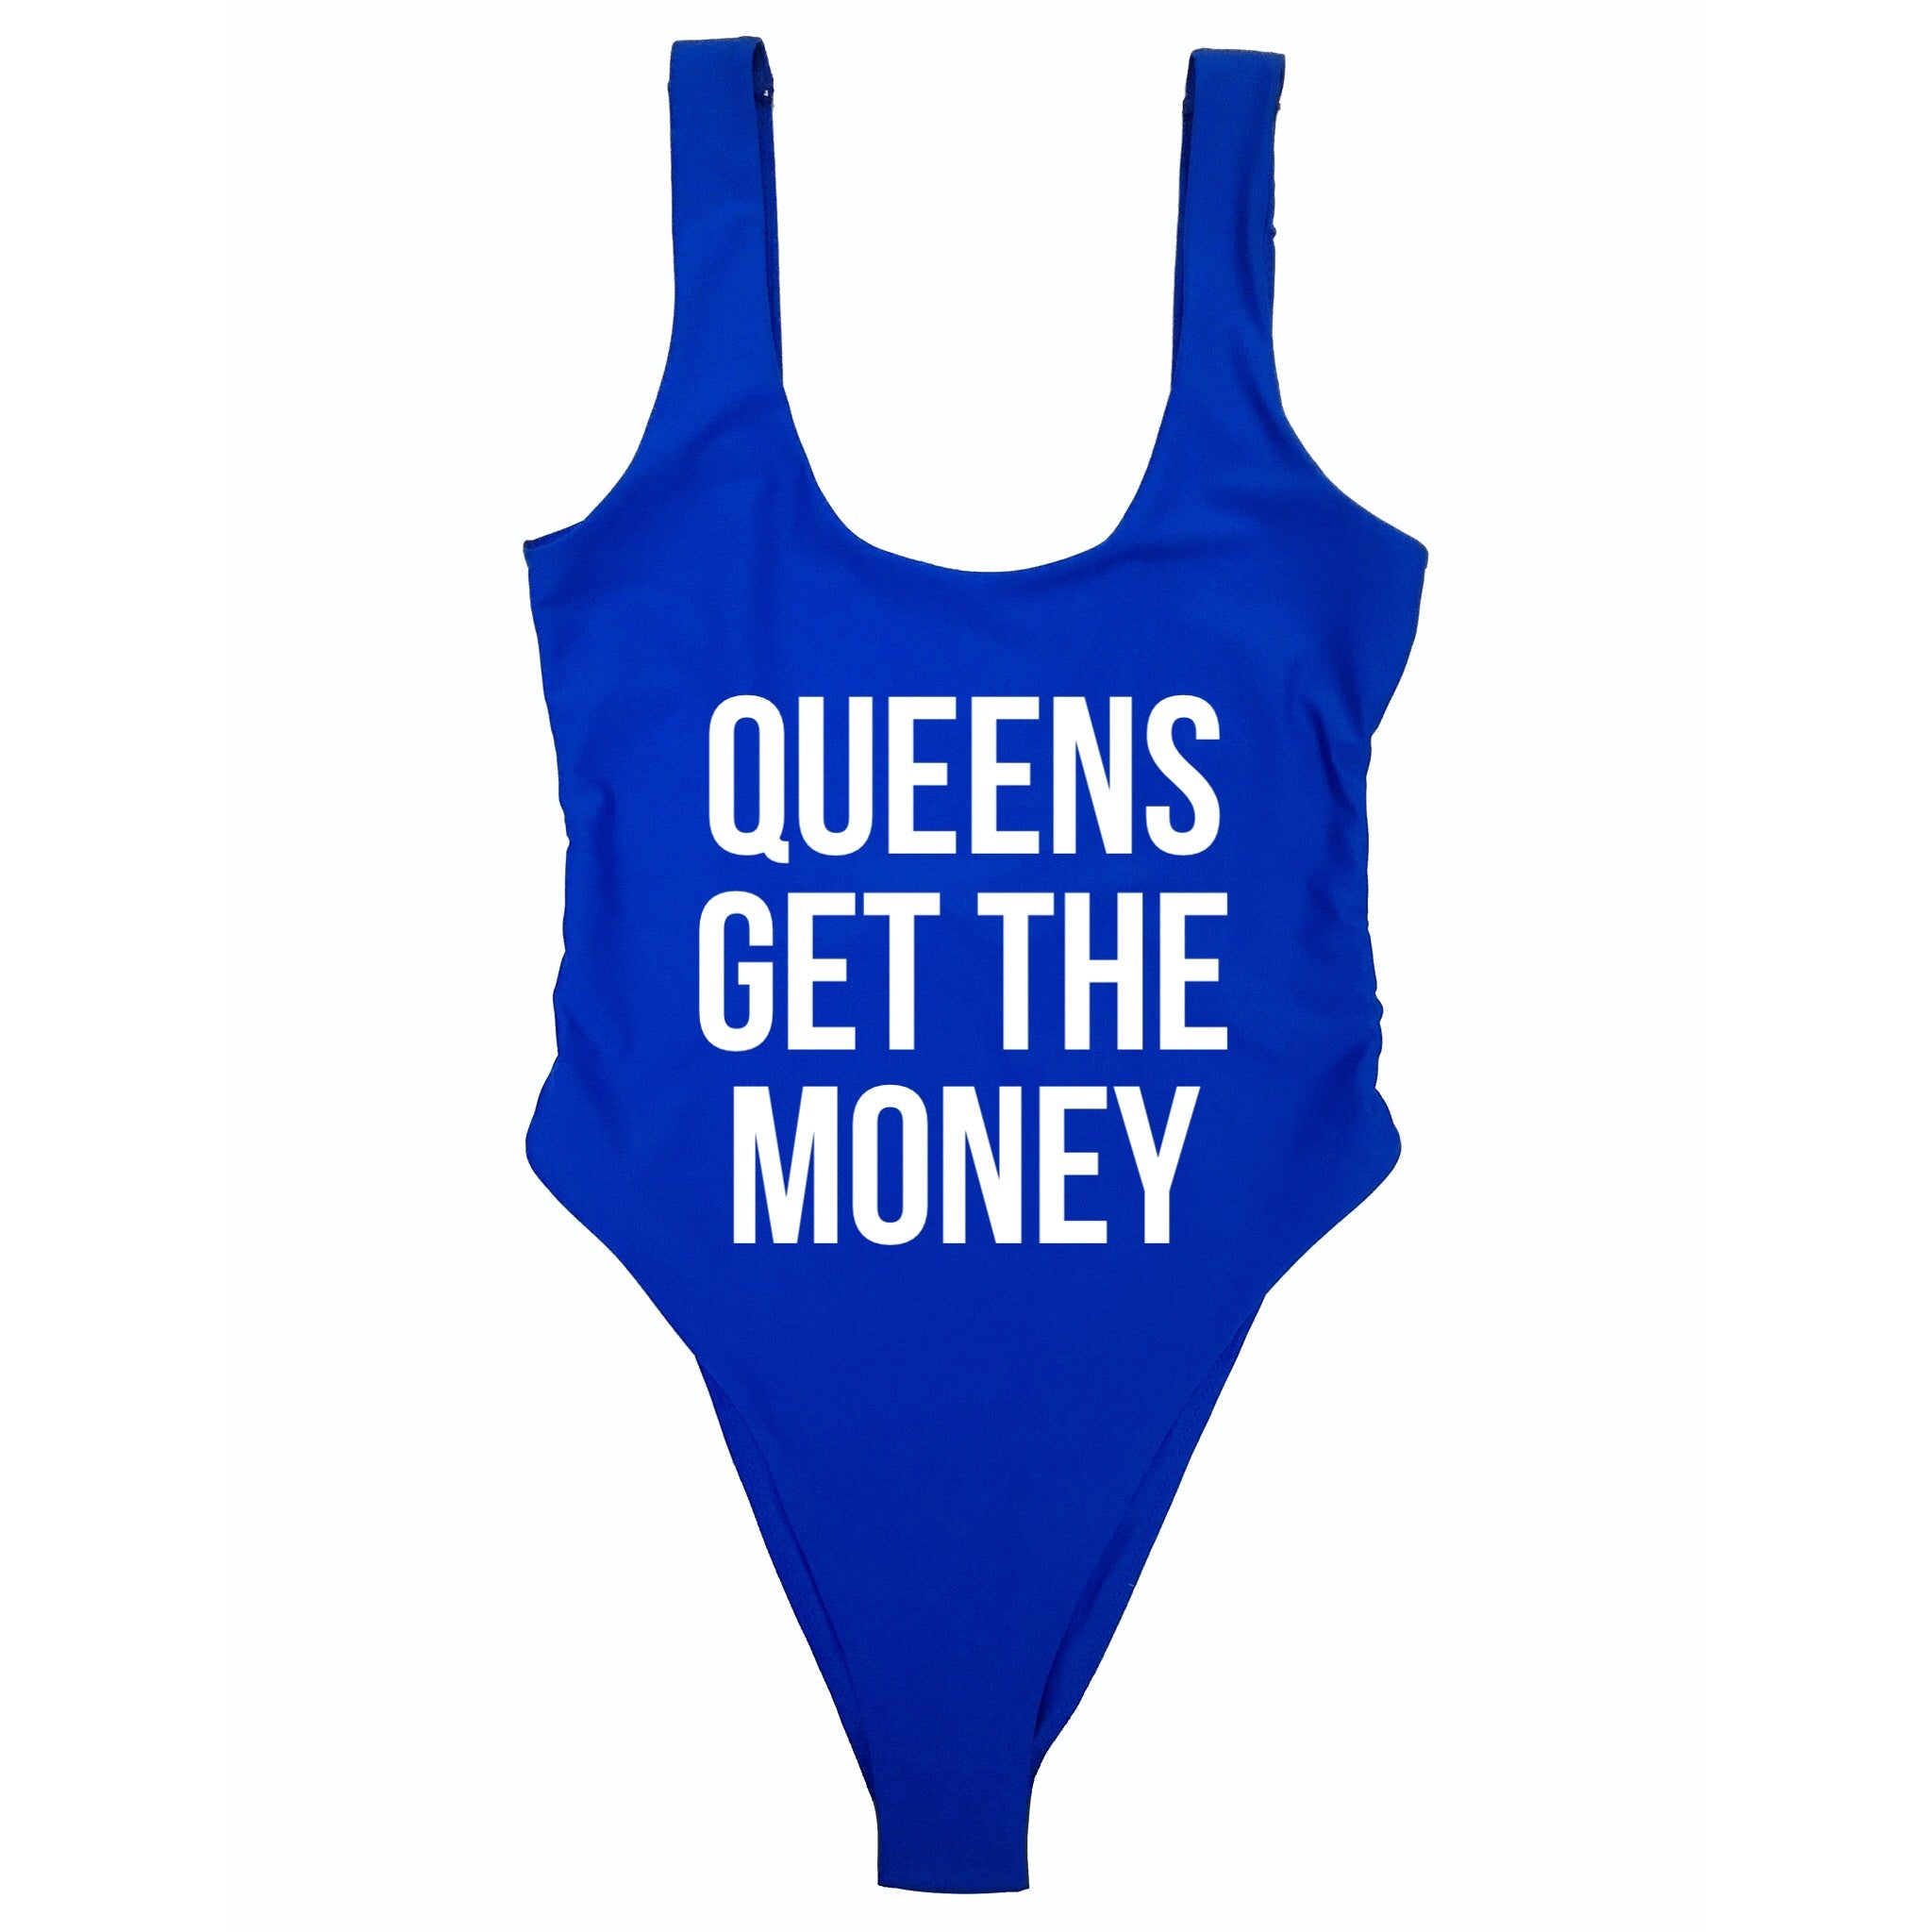 QUEENS GET THE MONEY